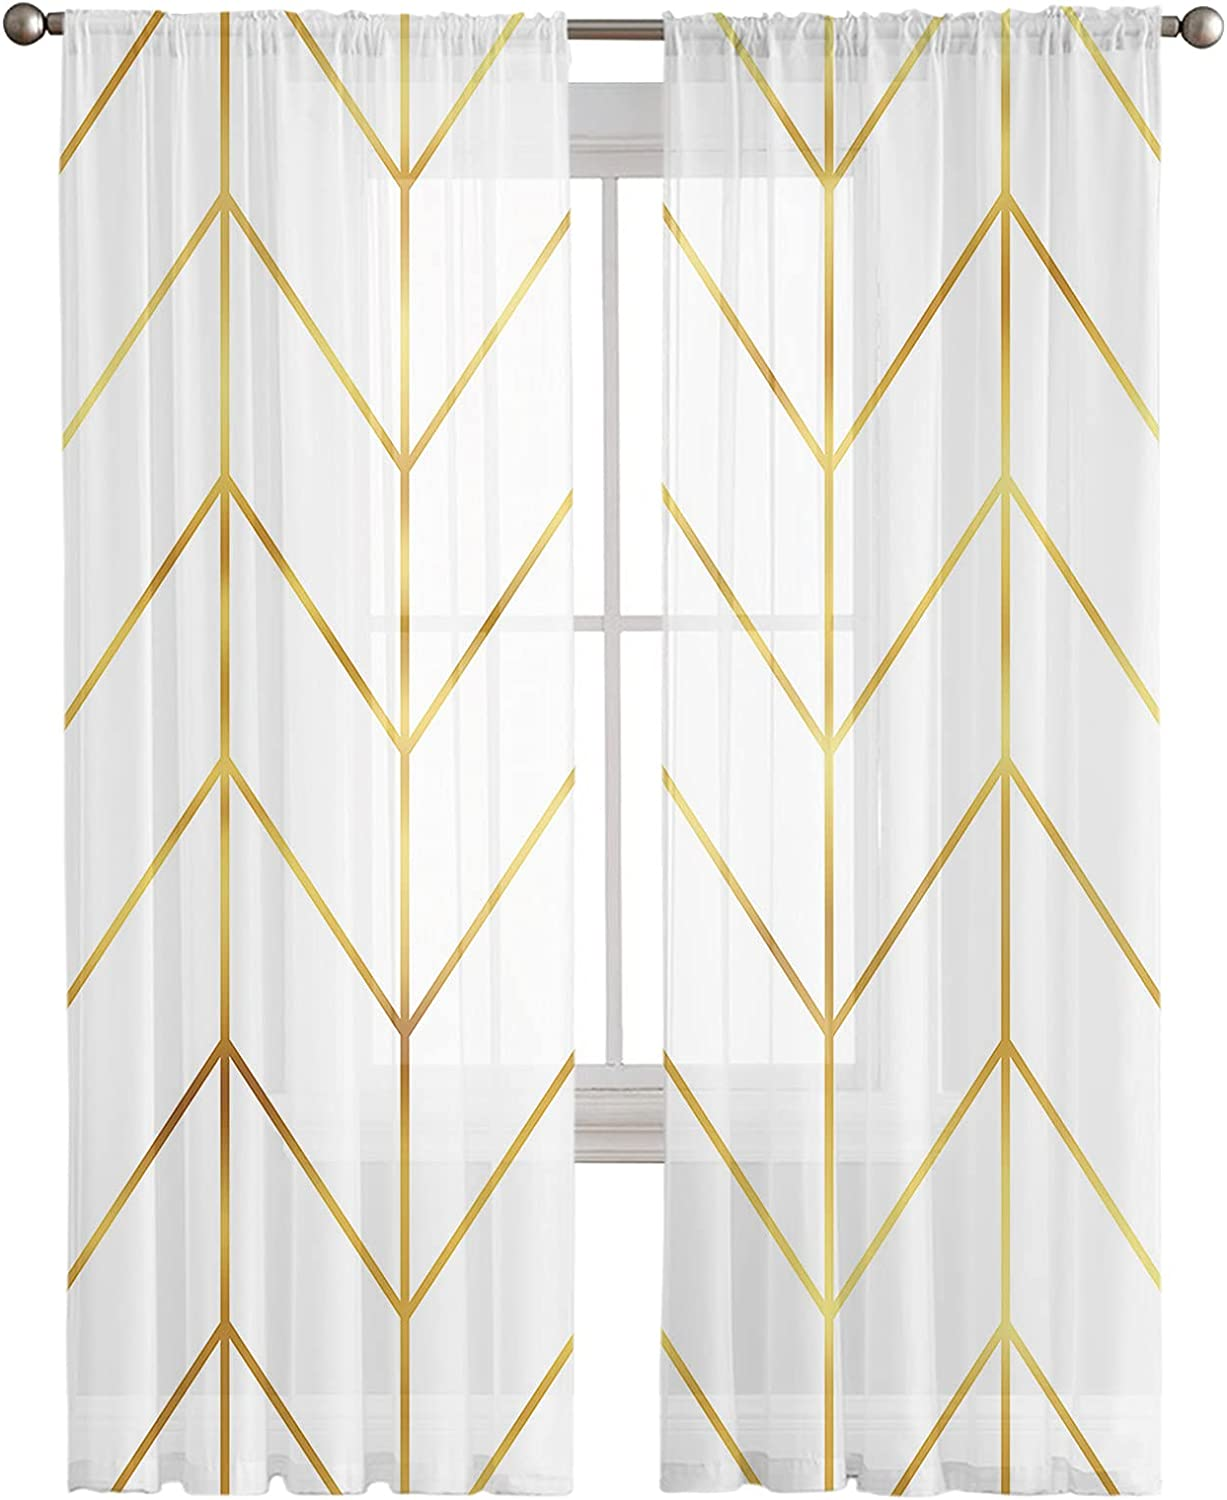 Kitchen Semi Sheer Window New products world's highest quality popular Curtain 96 Inches Panels Long Oklahoma City Mall Geometri